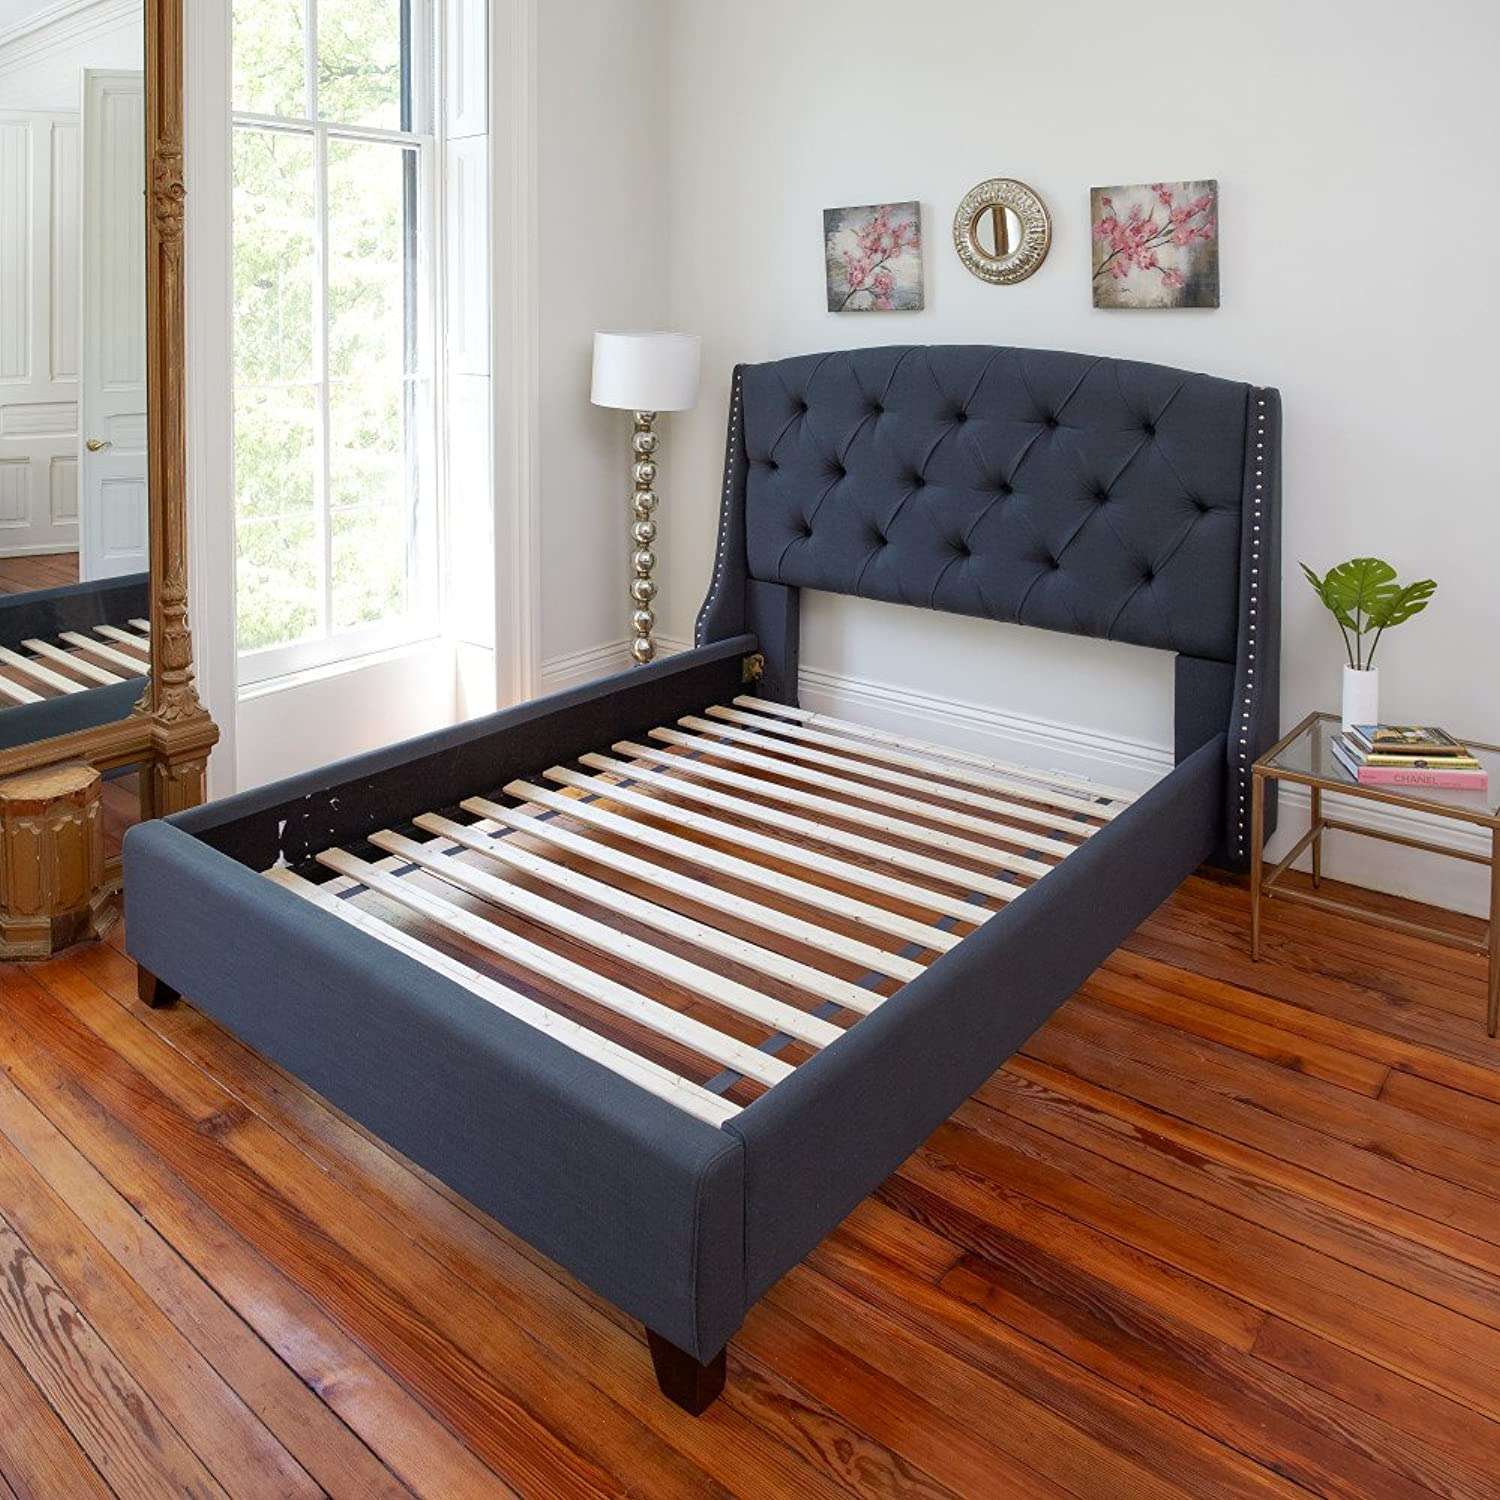 Classic Brands Solid Wood Bed Support Slats   Bunkie Board, Twin XL